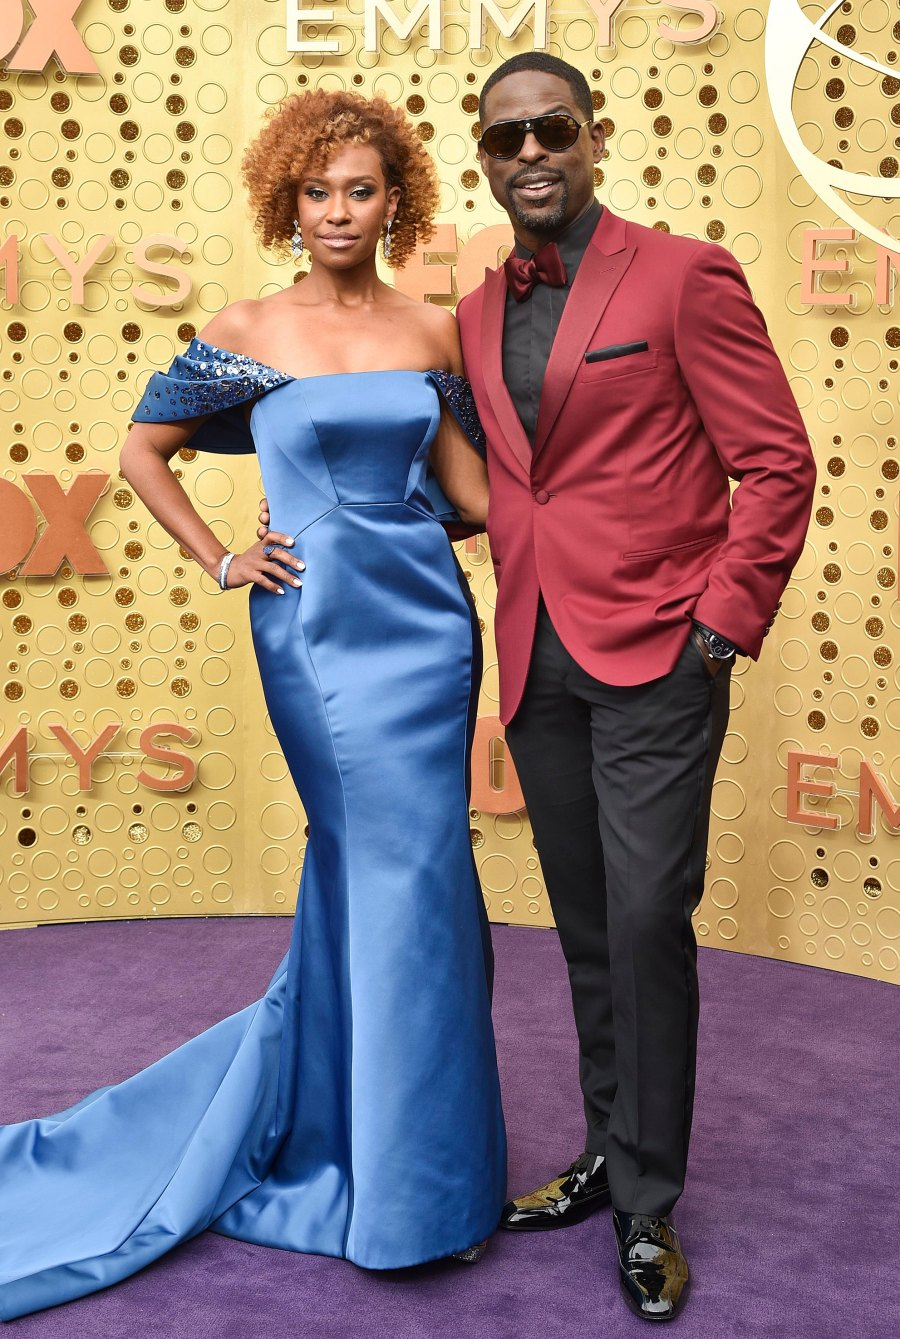 Emmys 2019 Stylish Couples - Sterling K. Brown and Ryan Michelle Bathe